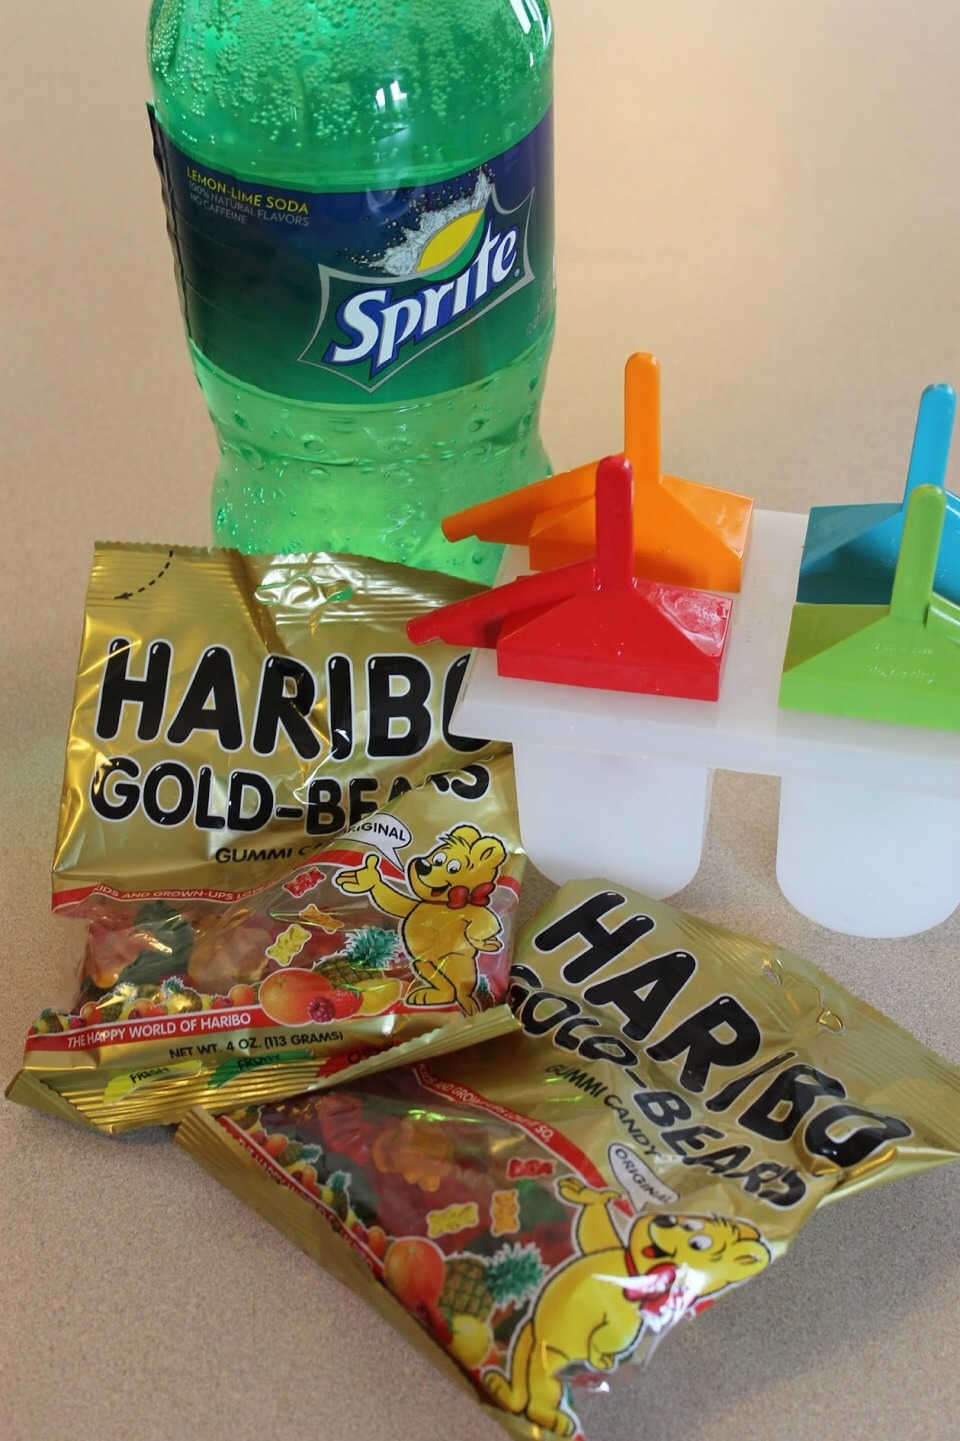 First get gummy bears,sprite,and popcicle thing